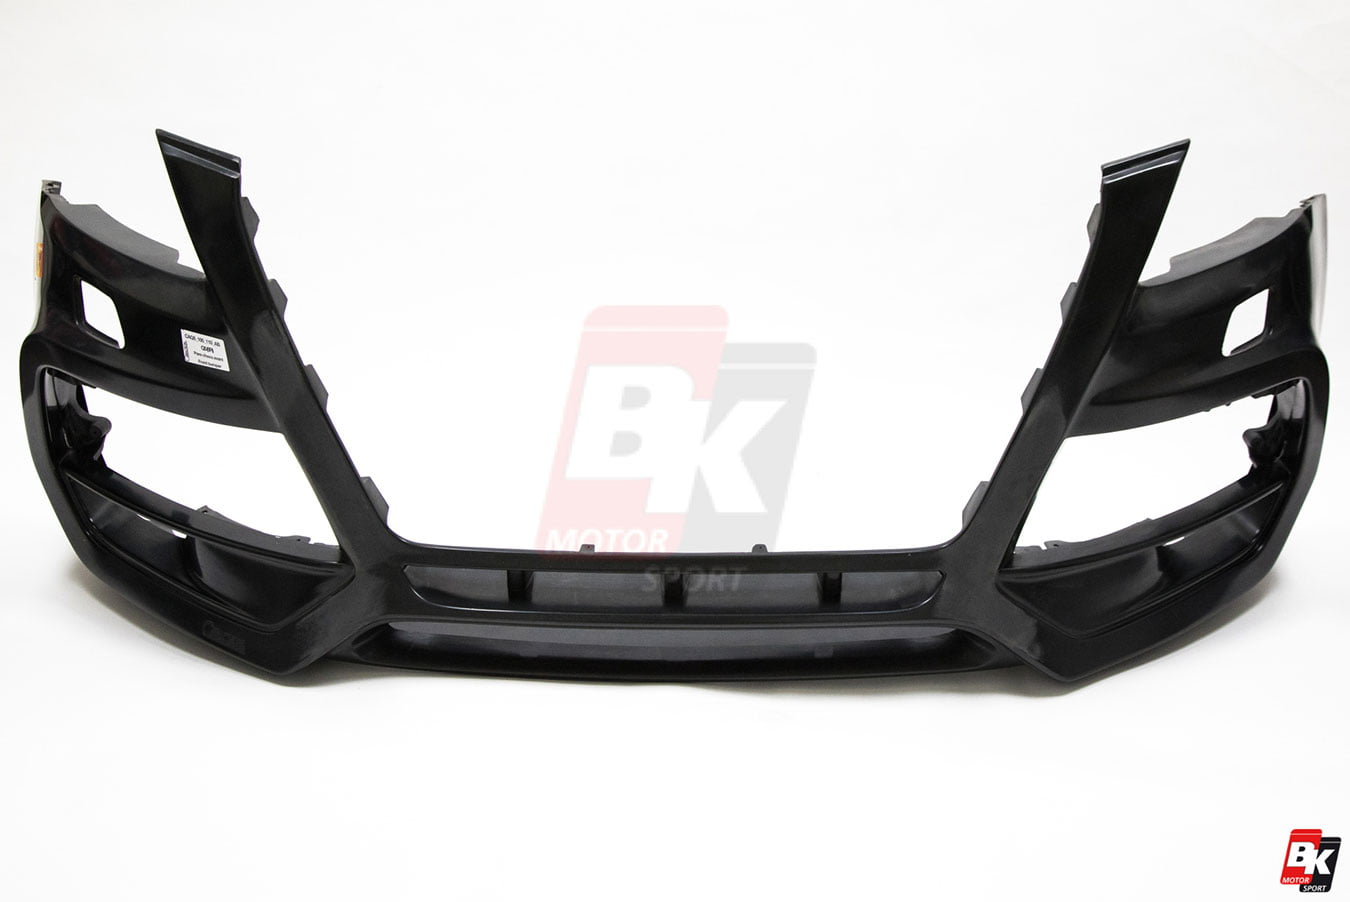 Caractere Front Bumper for Cars with Original Foglights and Parking Sensors, fits Audi Q5 B8.0